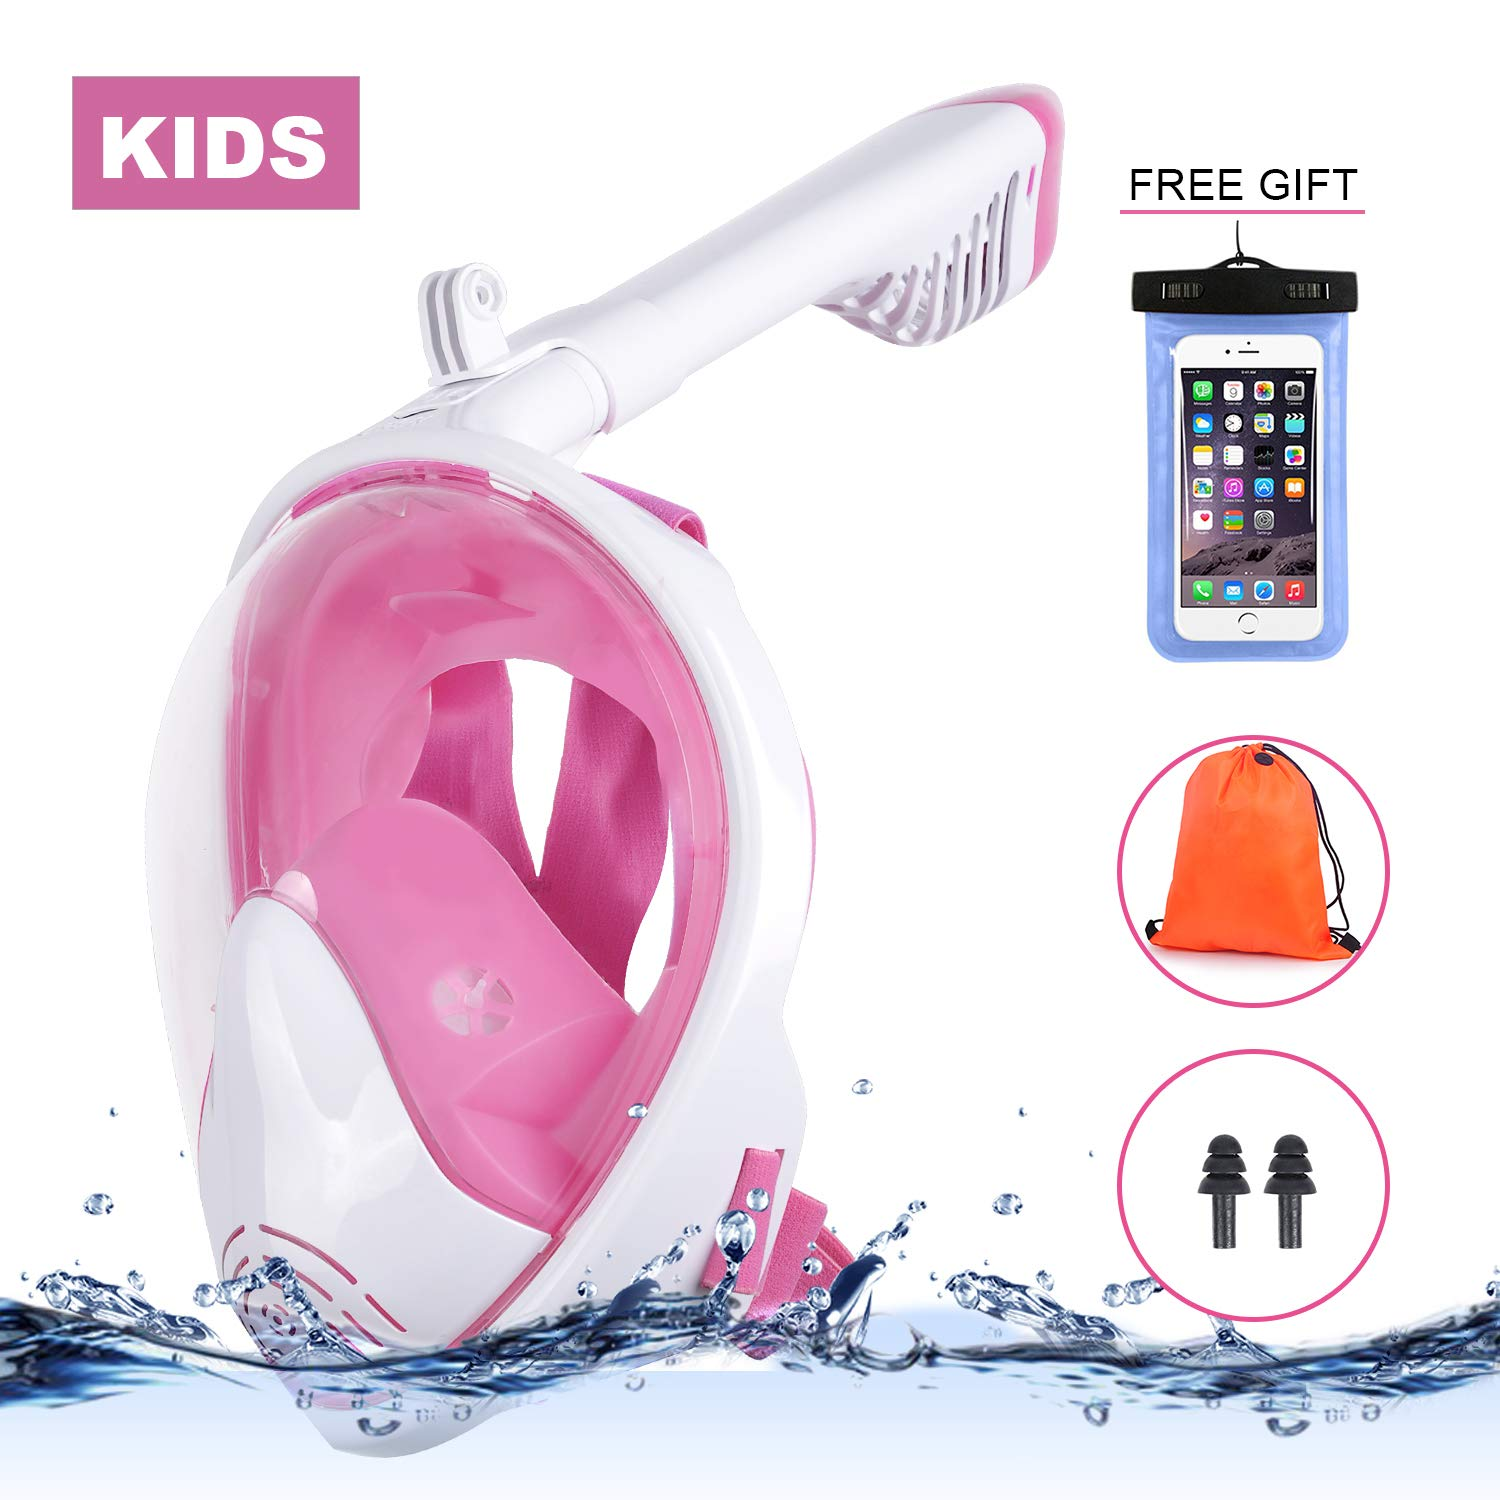 ReHaffe Small Full Face Snorkel Mask Pink, Foldable 180°Full Face Snorkel Mask Kids for Clear Veiwing and Anti-Fog Anti-Leak Easy Breath Compatible with Detachable Camera Mount Perfect for Swimming